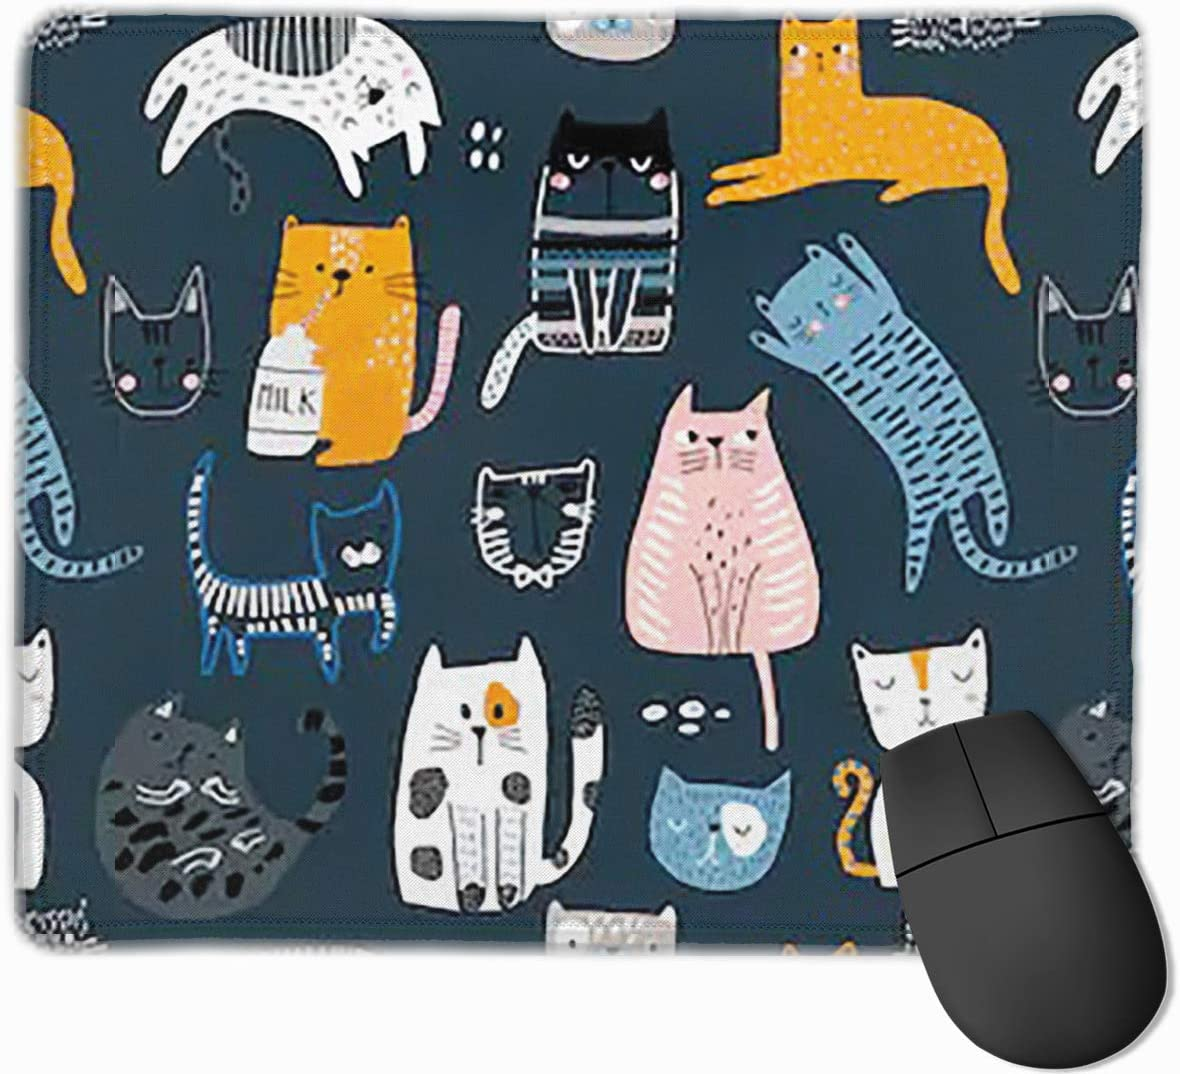 Joyce-life Cute Kittens Diferent Mouse Pads for Computers Laptop Non-Slip Rubber Base Stitched Edge Waterproof Office Mouse Pad Office Gaming Computer at Home Or Work Size 2530